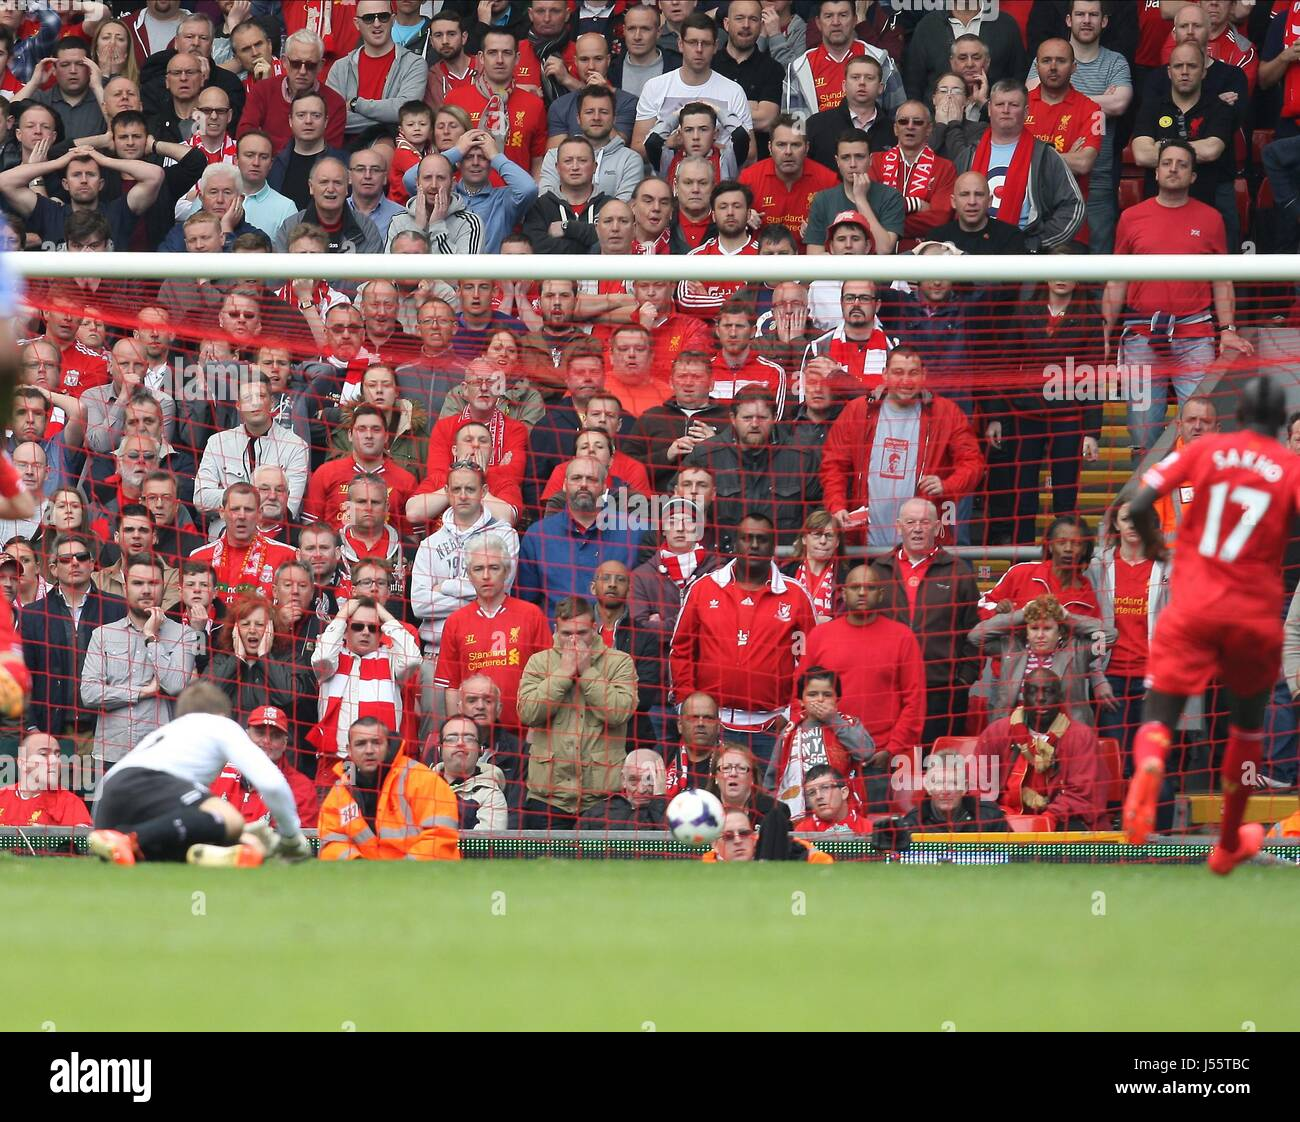 Liverpool Vs Chelsea: Liverpool 1 Stock Photos & Liverpool 1 Stock Images